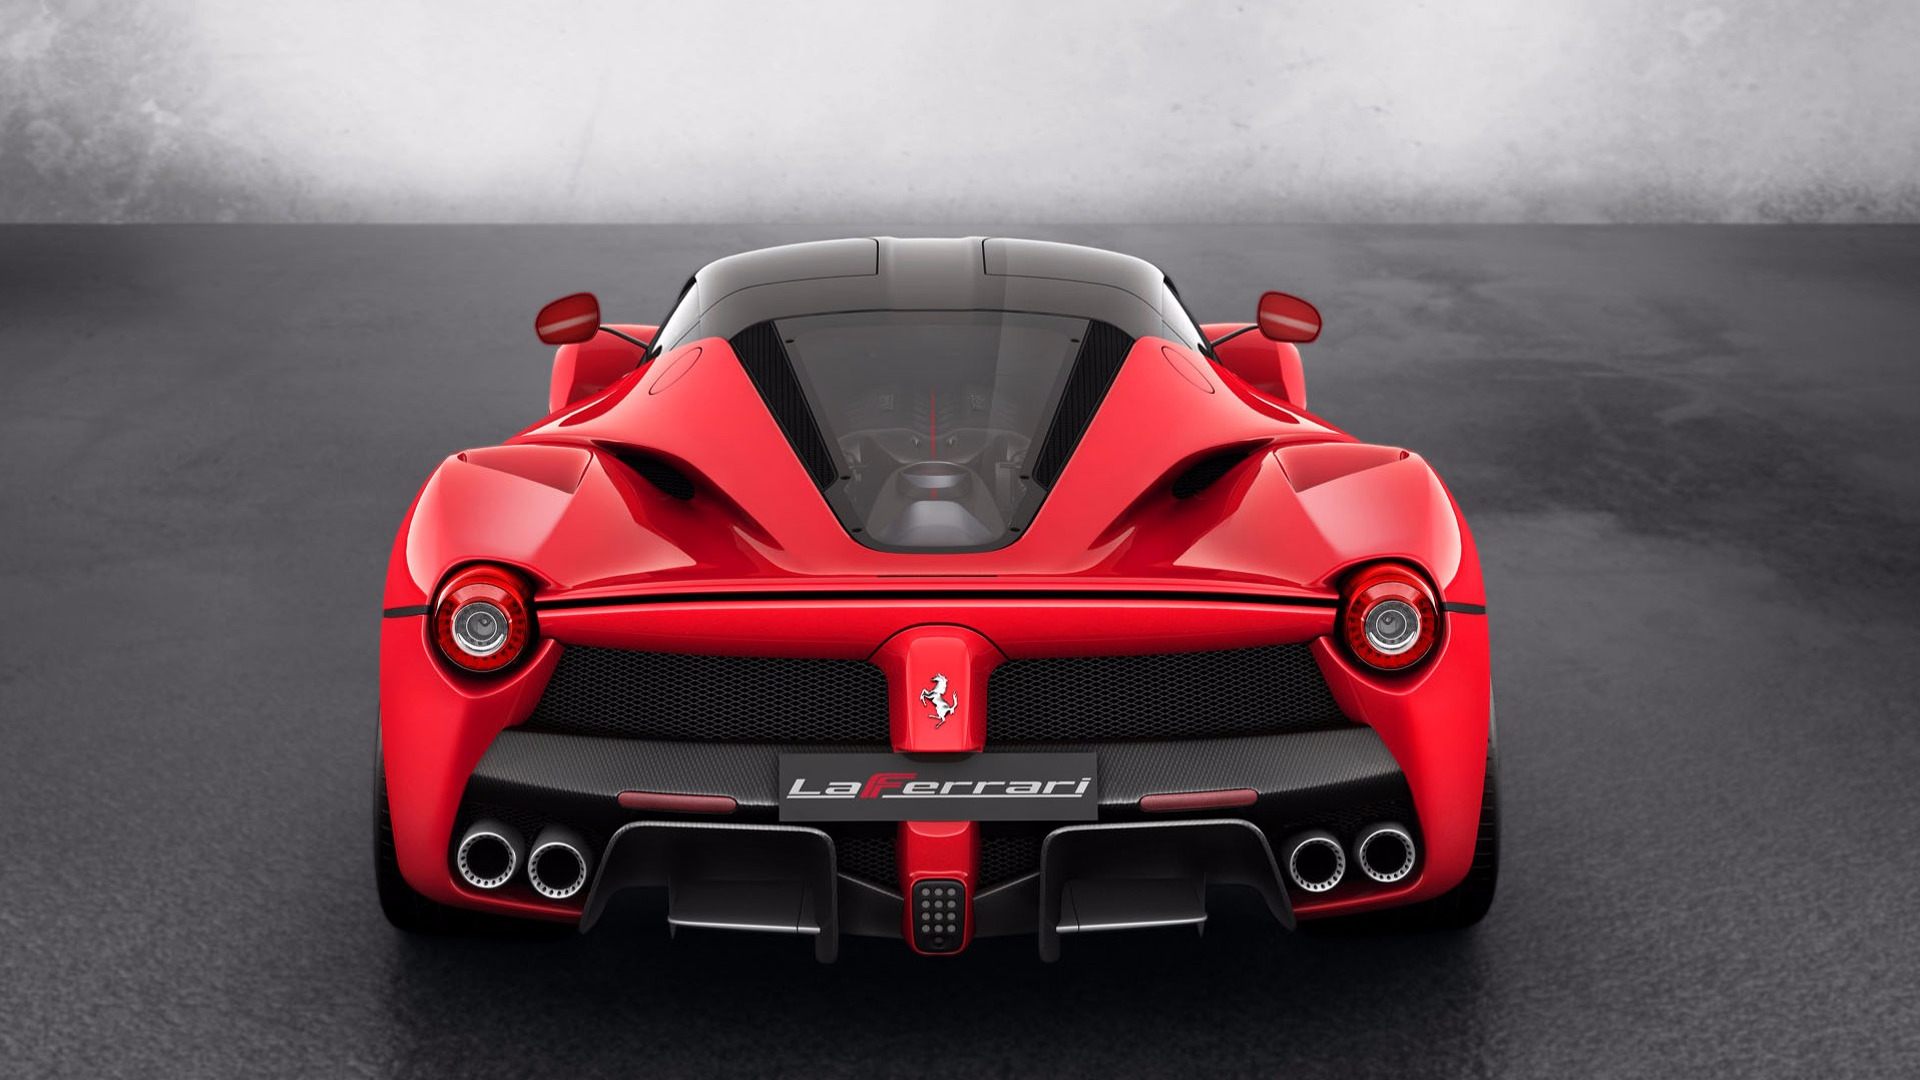 Laferrari Headed For Crusher In Failed South Africa